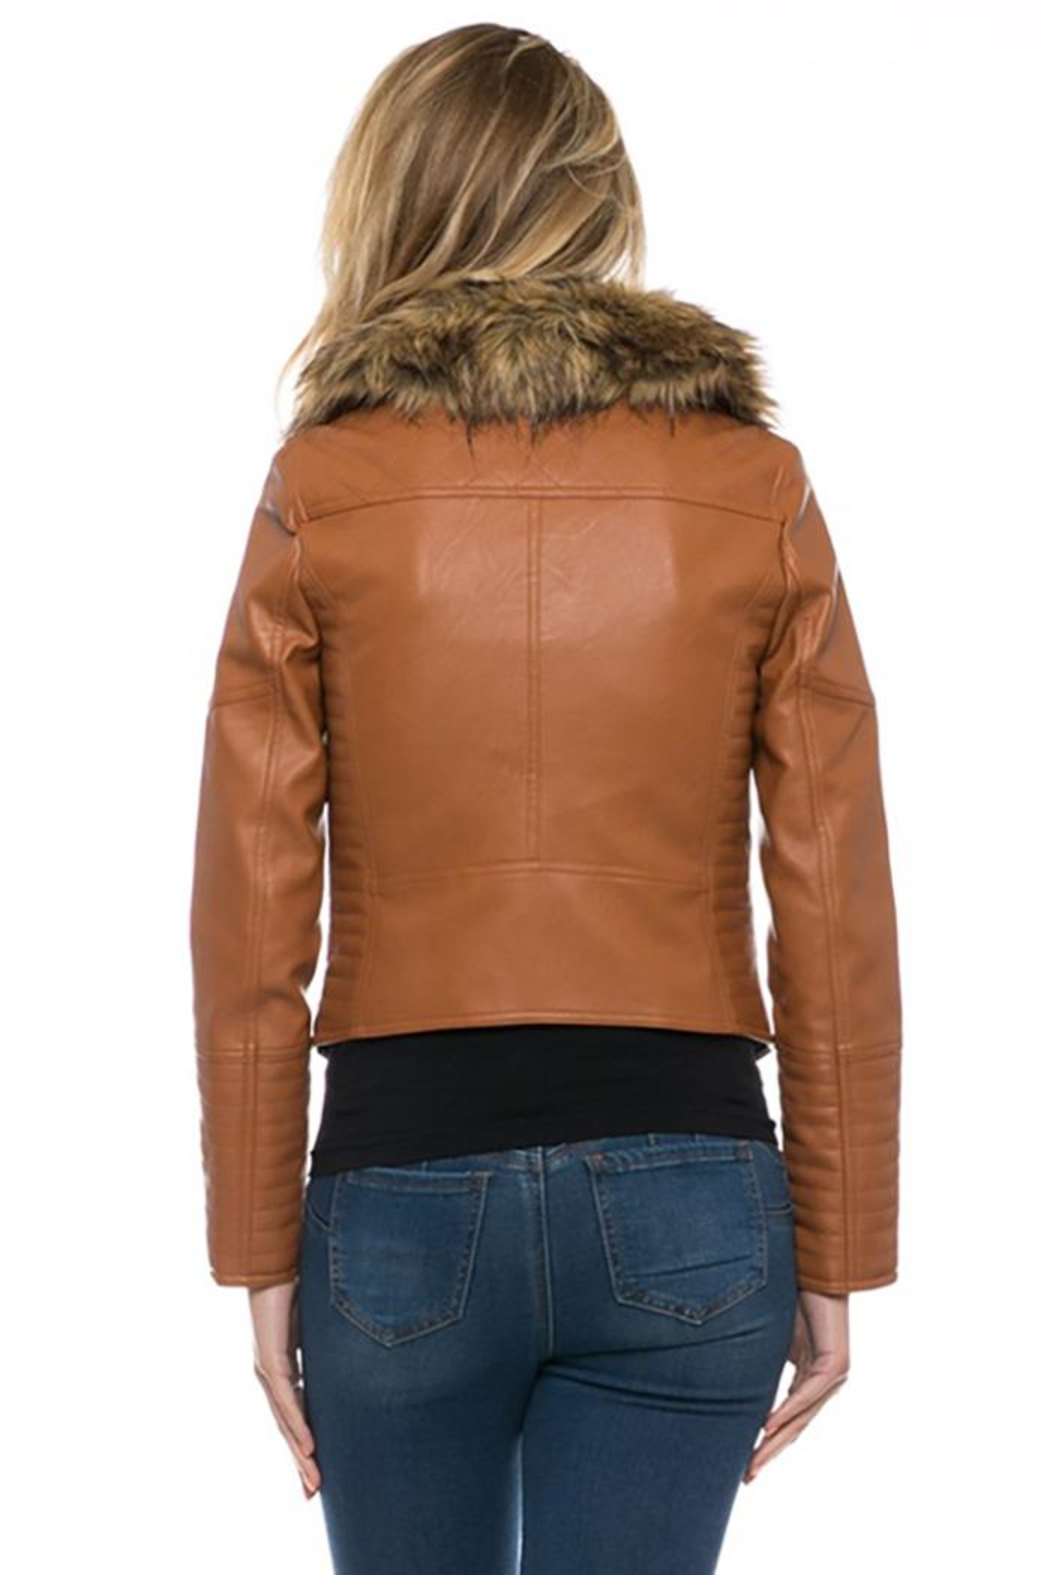 Lovetree Faux Leather Fur-Jacket - Front Full Image